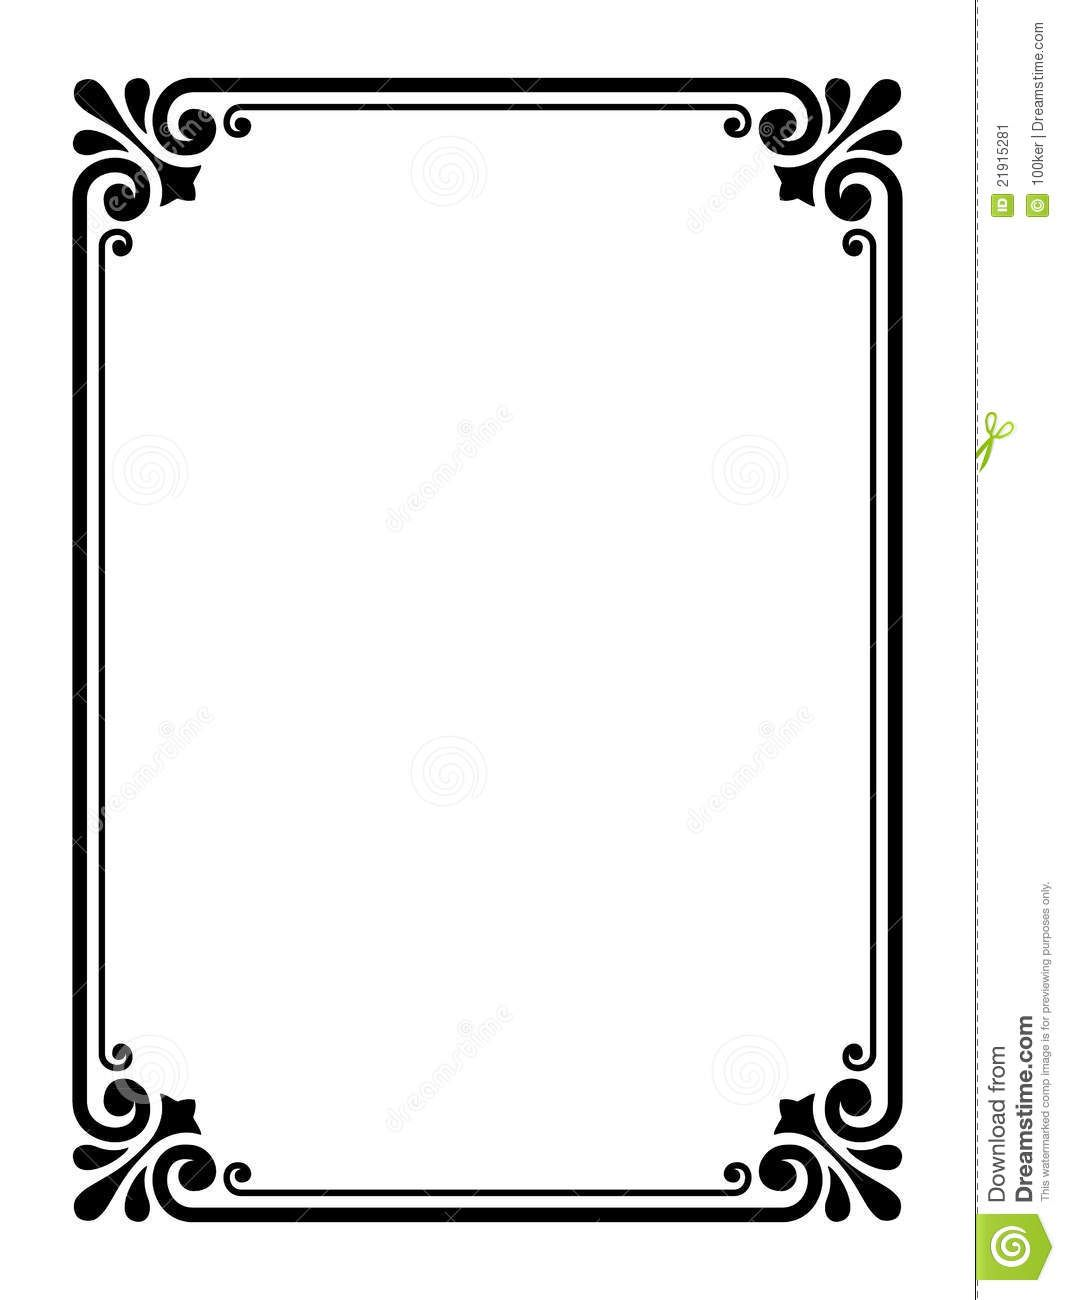 simple frame clipart clipart kid house ideas pinterest rh pinterest com border clip art download border cliparts